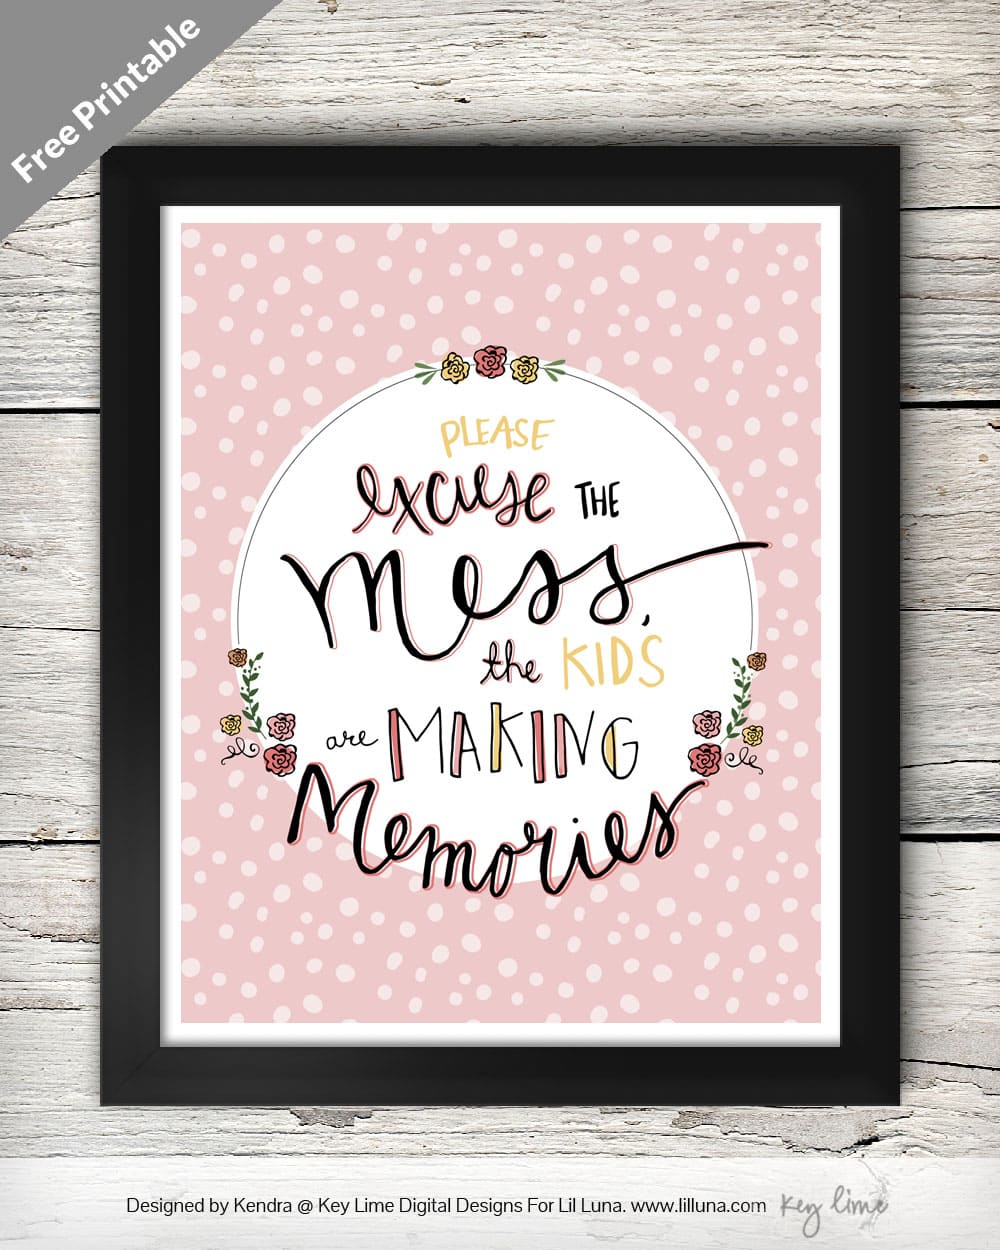 Please excuse the mess, the kids are making memories - LOVE this quote!! Free print and 3 versions on { lilluna.com } Great as a gift or decor in your home!